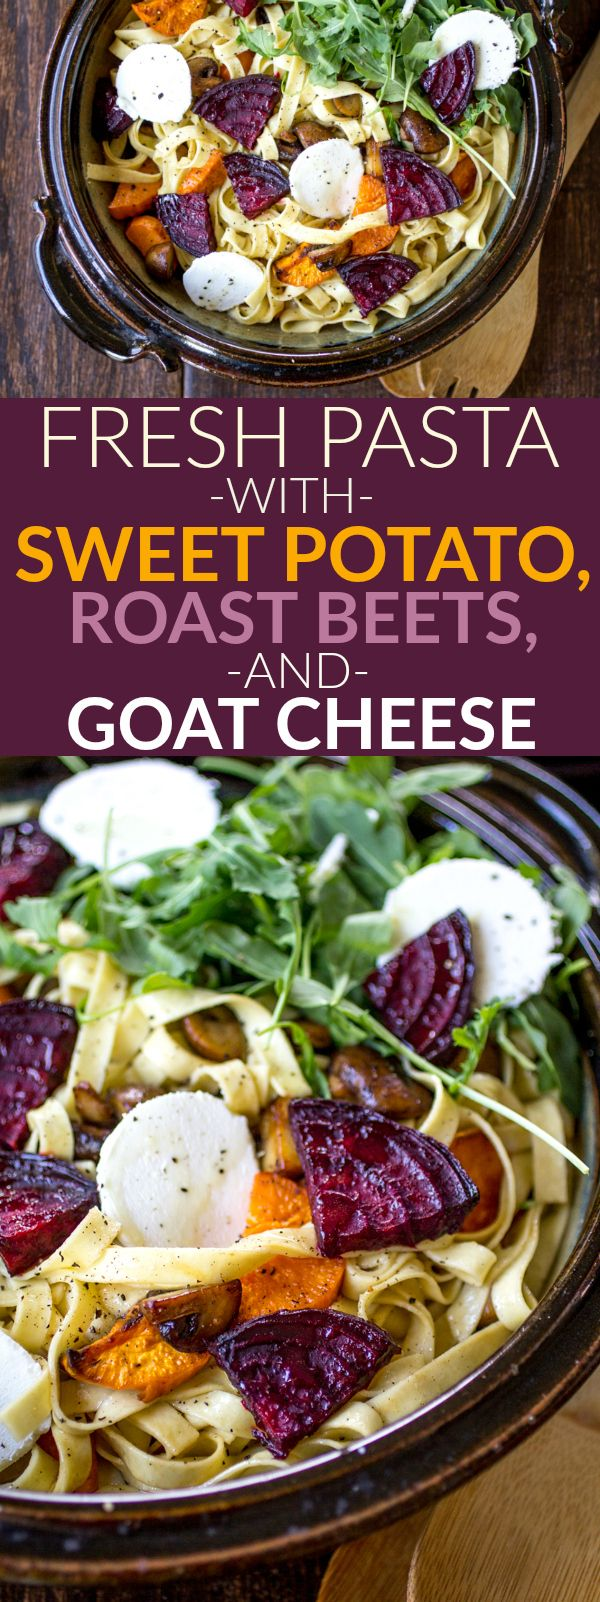 with Sweet Potato, Roasted Beet, and Goat Cheese | Recipe | Vegetables ...